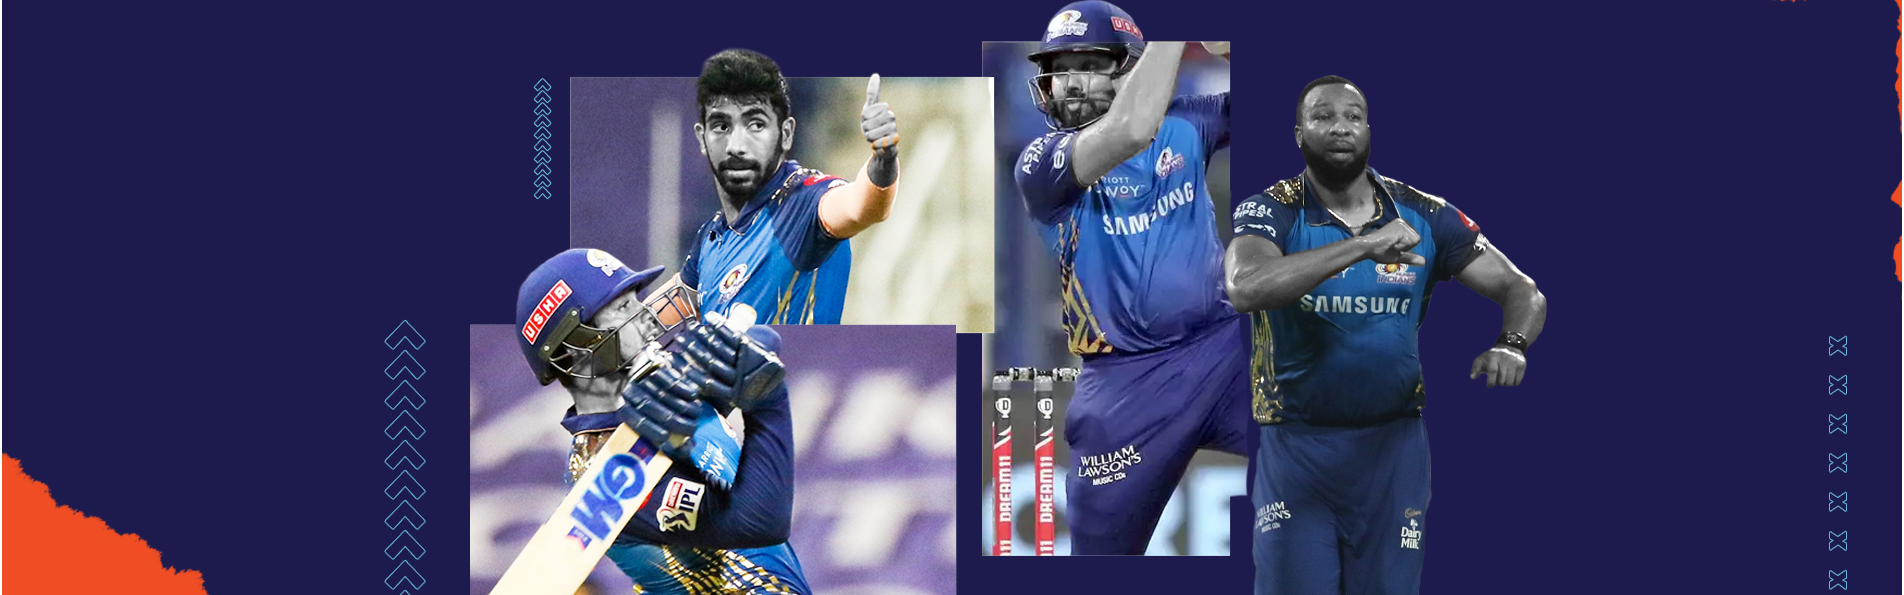 IPL: The Numbers Behind the Rise and Rise of Mumbai Indians